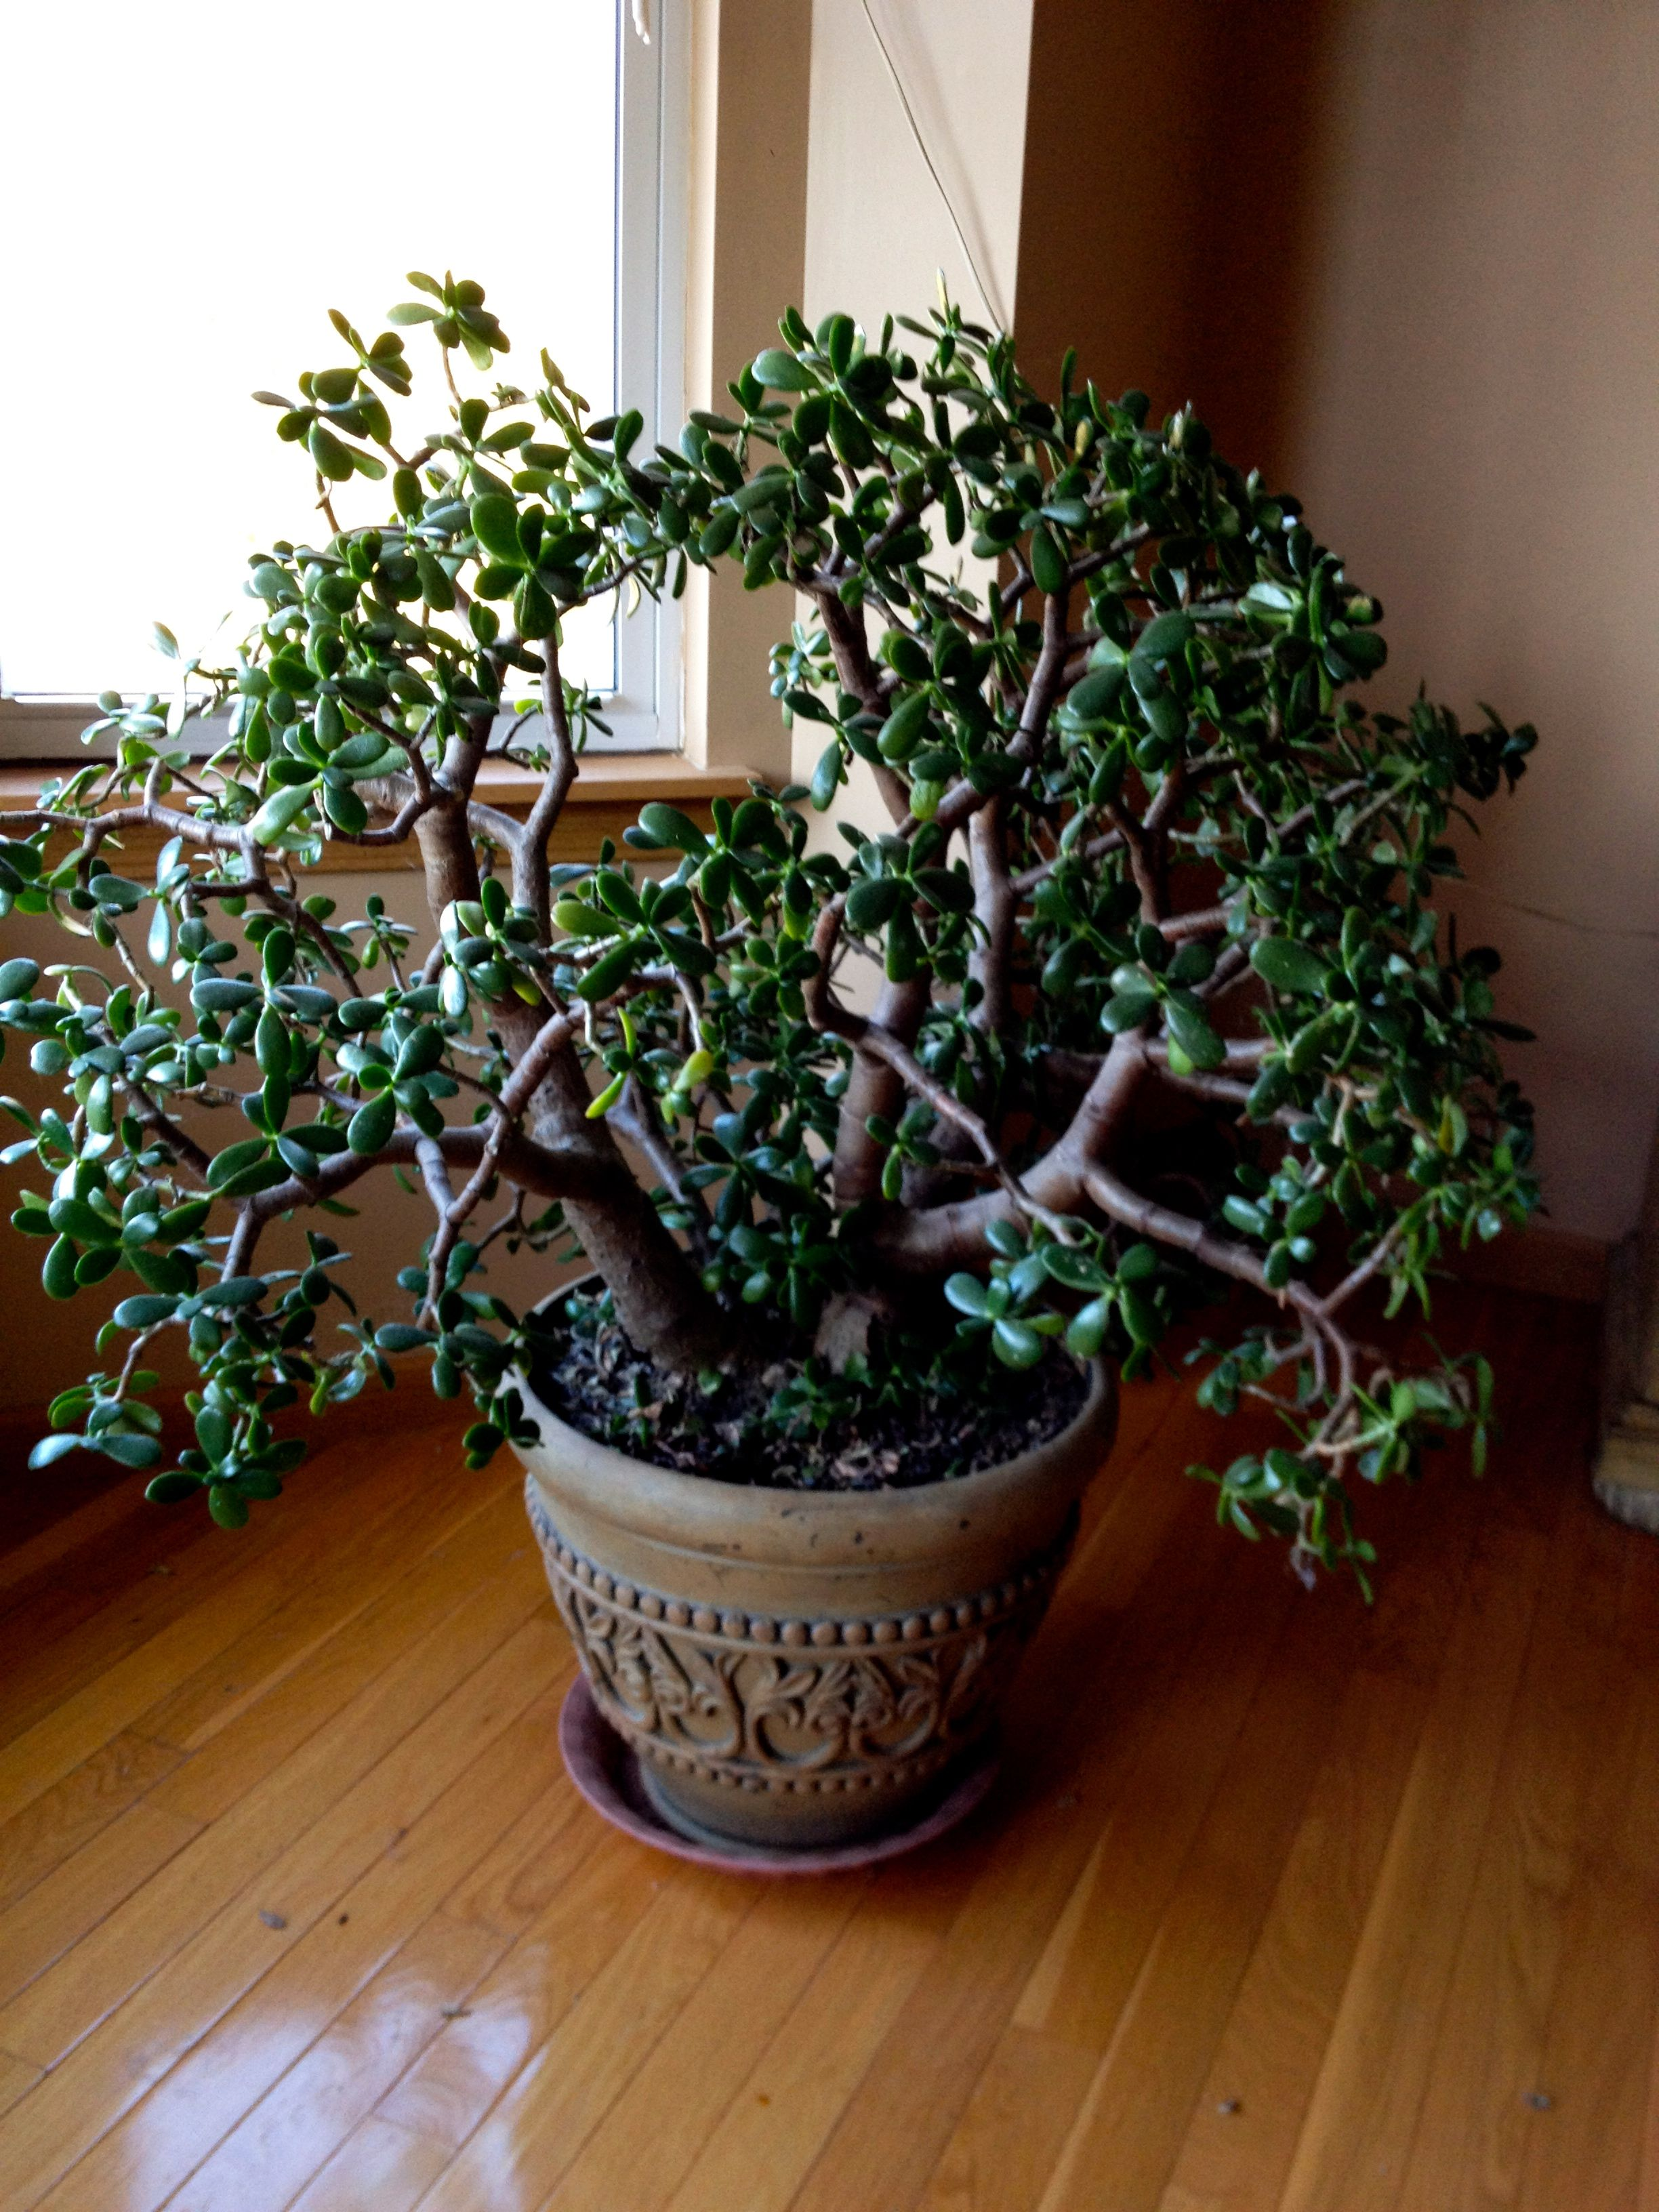 my jade plant I had in San Antonio grew to be about this big as well